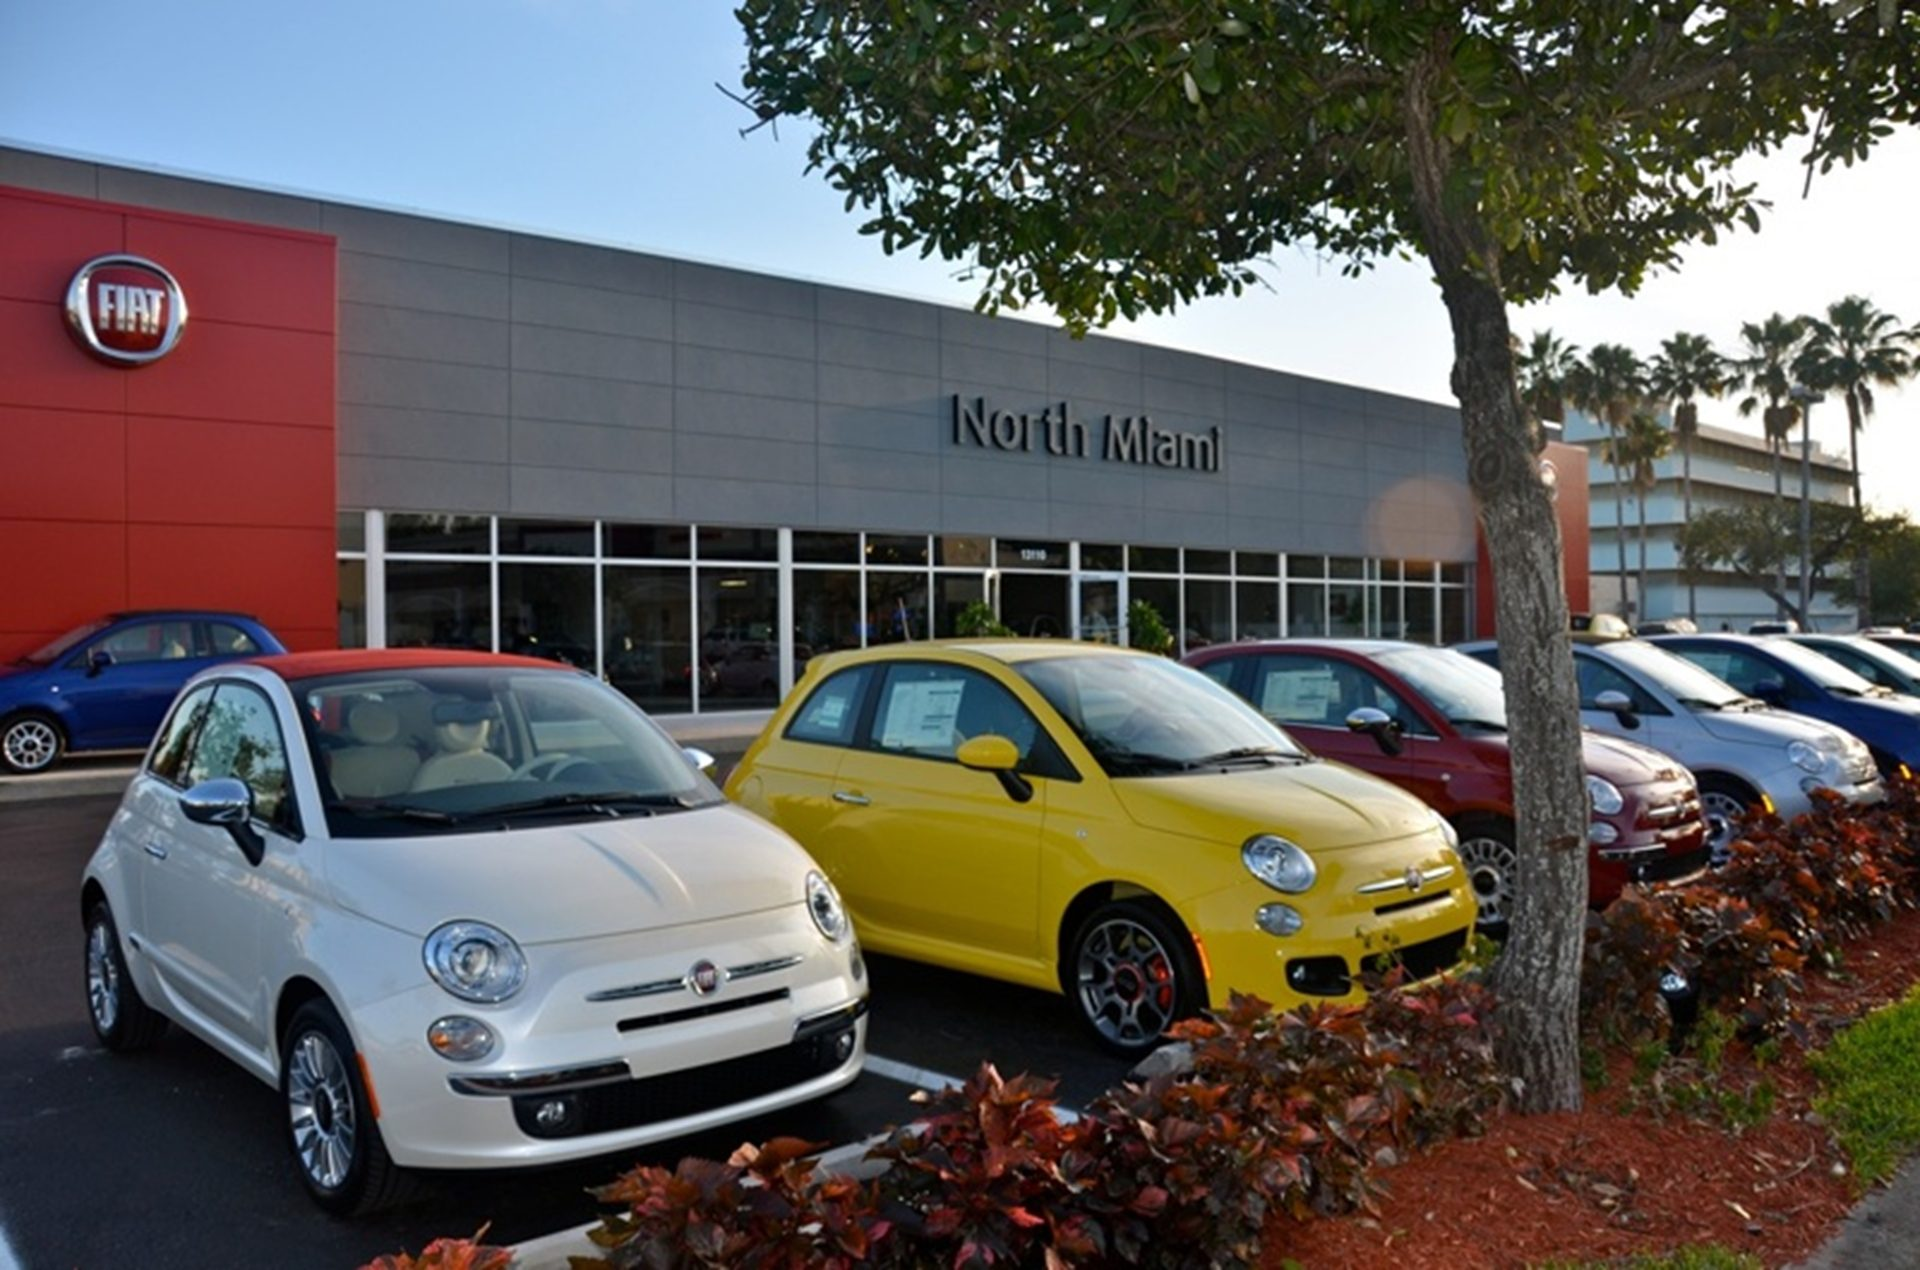 Fiat studio in Miami with multicolored row of Fiat cars parked outside